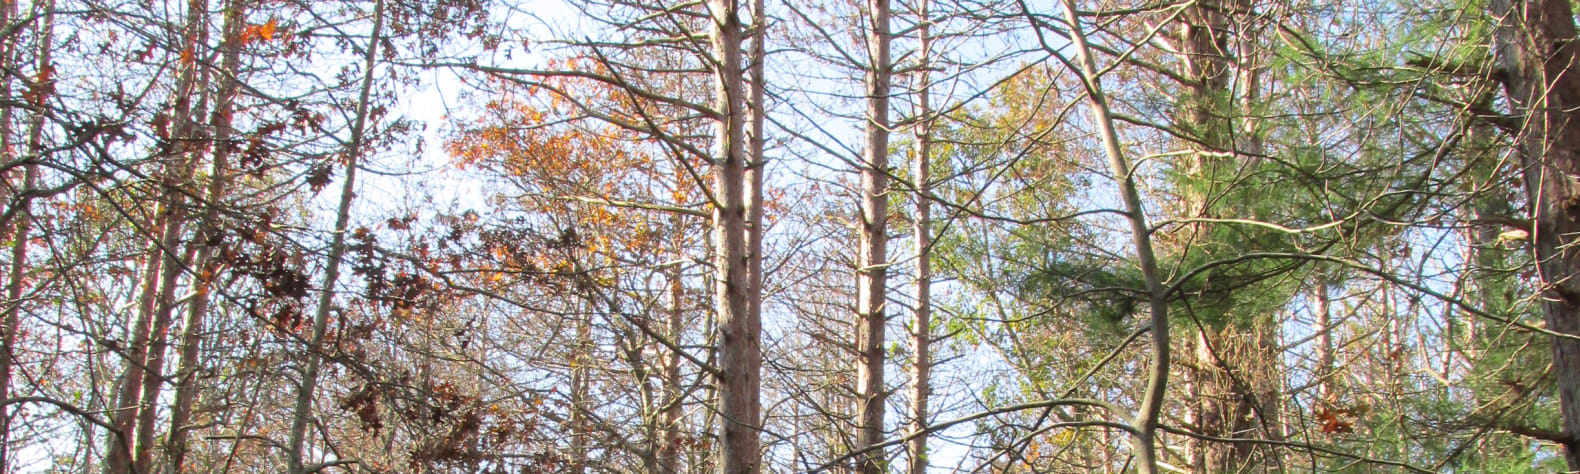 Shawme-Crowell State Forest